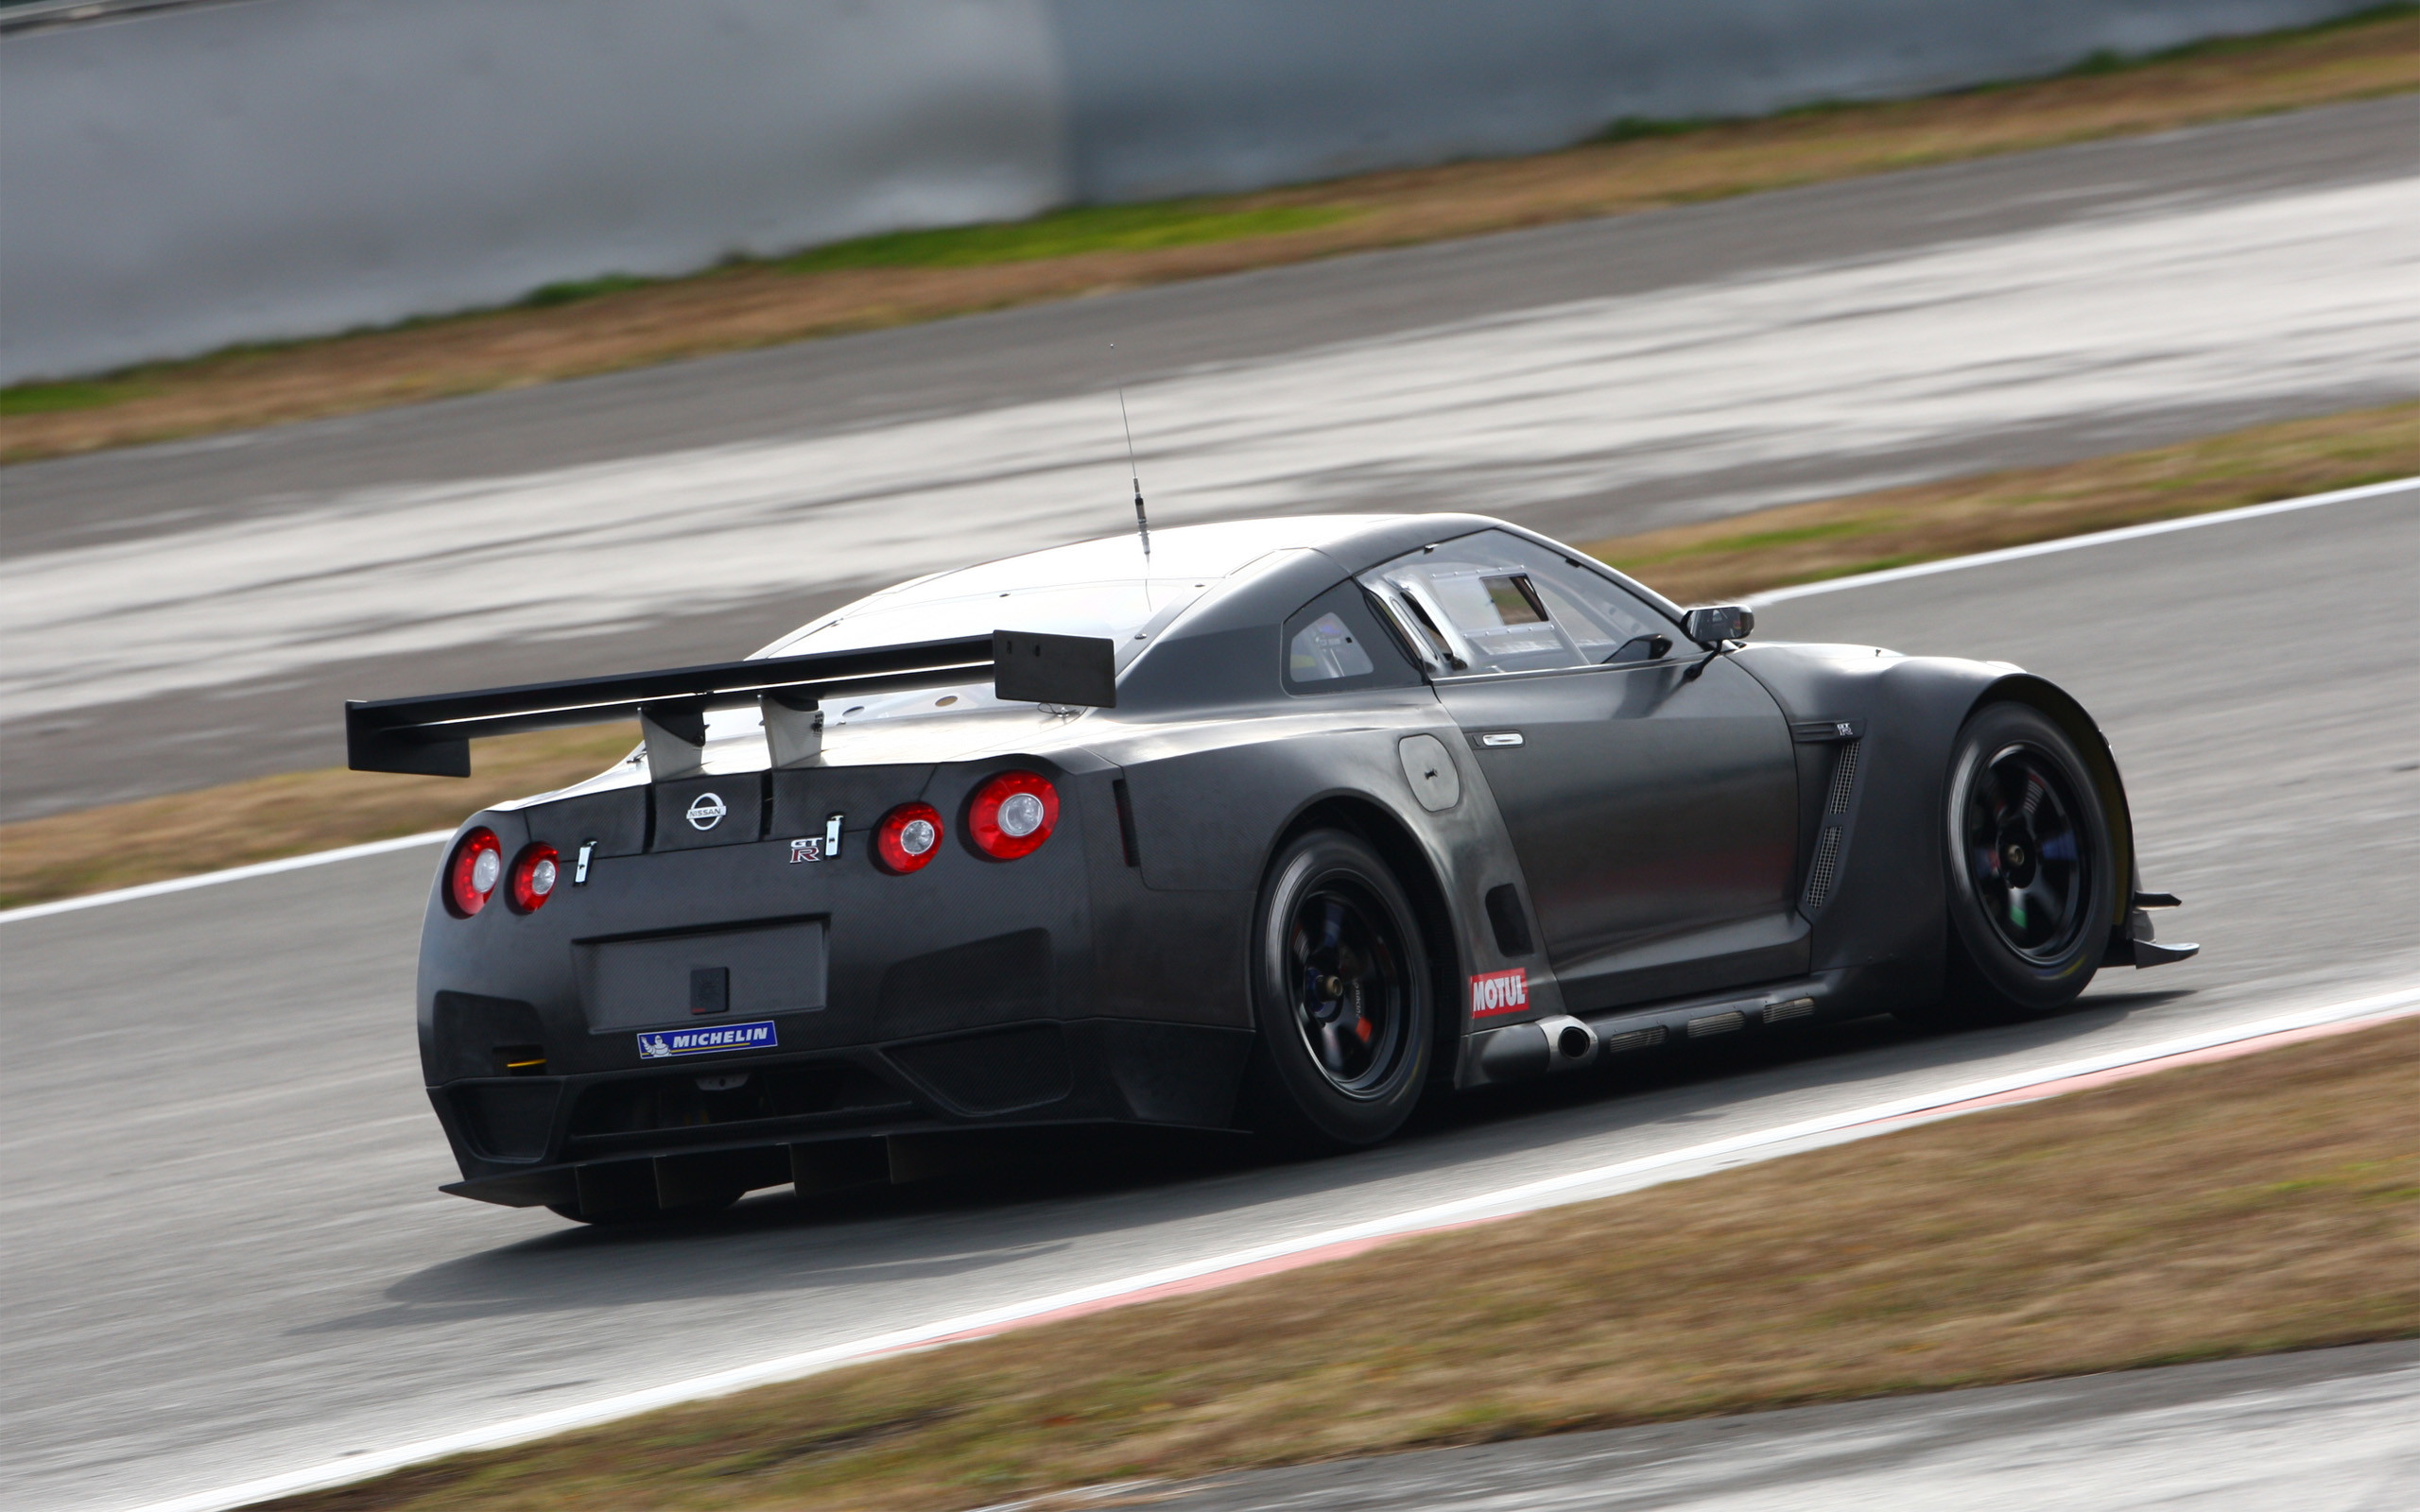 Black Cars Nissan GT-R FIA GT1 Supercars Vehicles